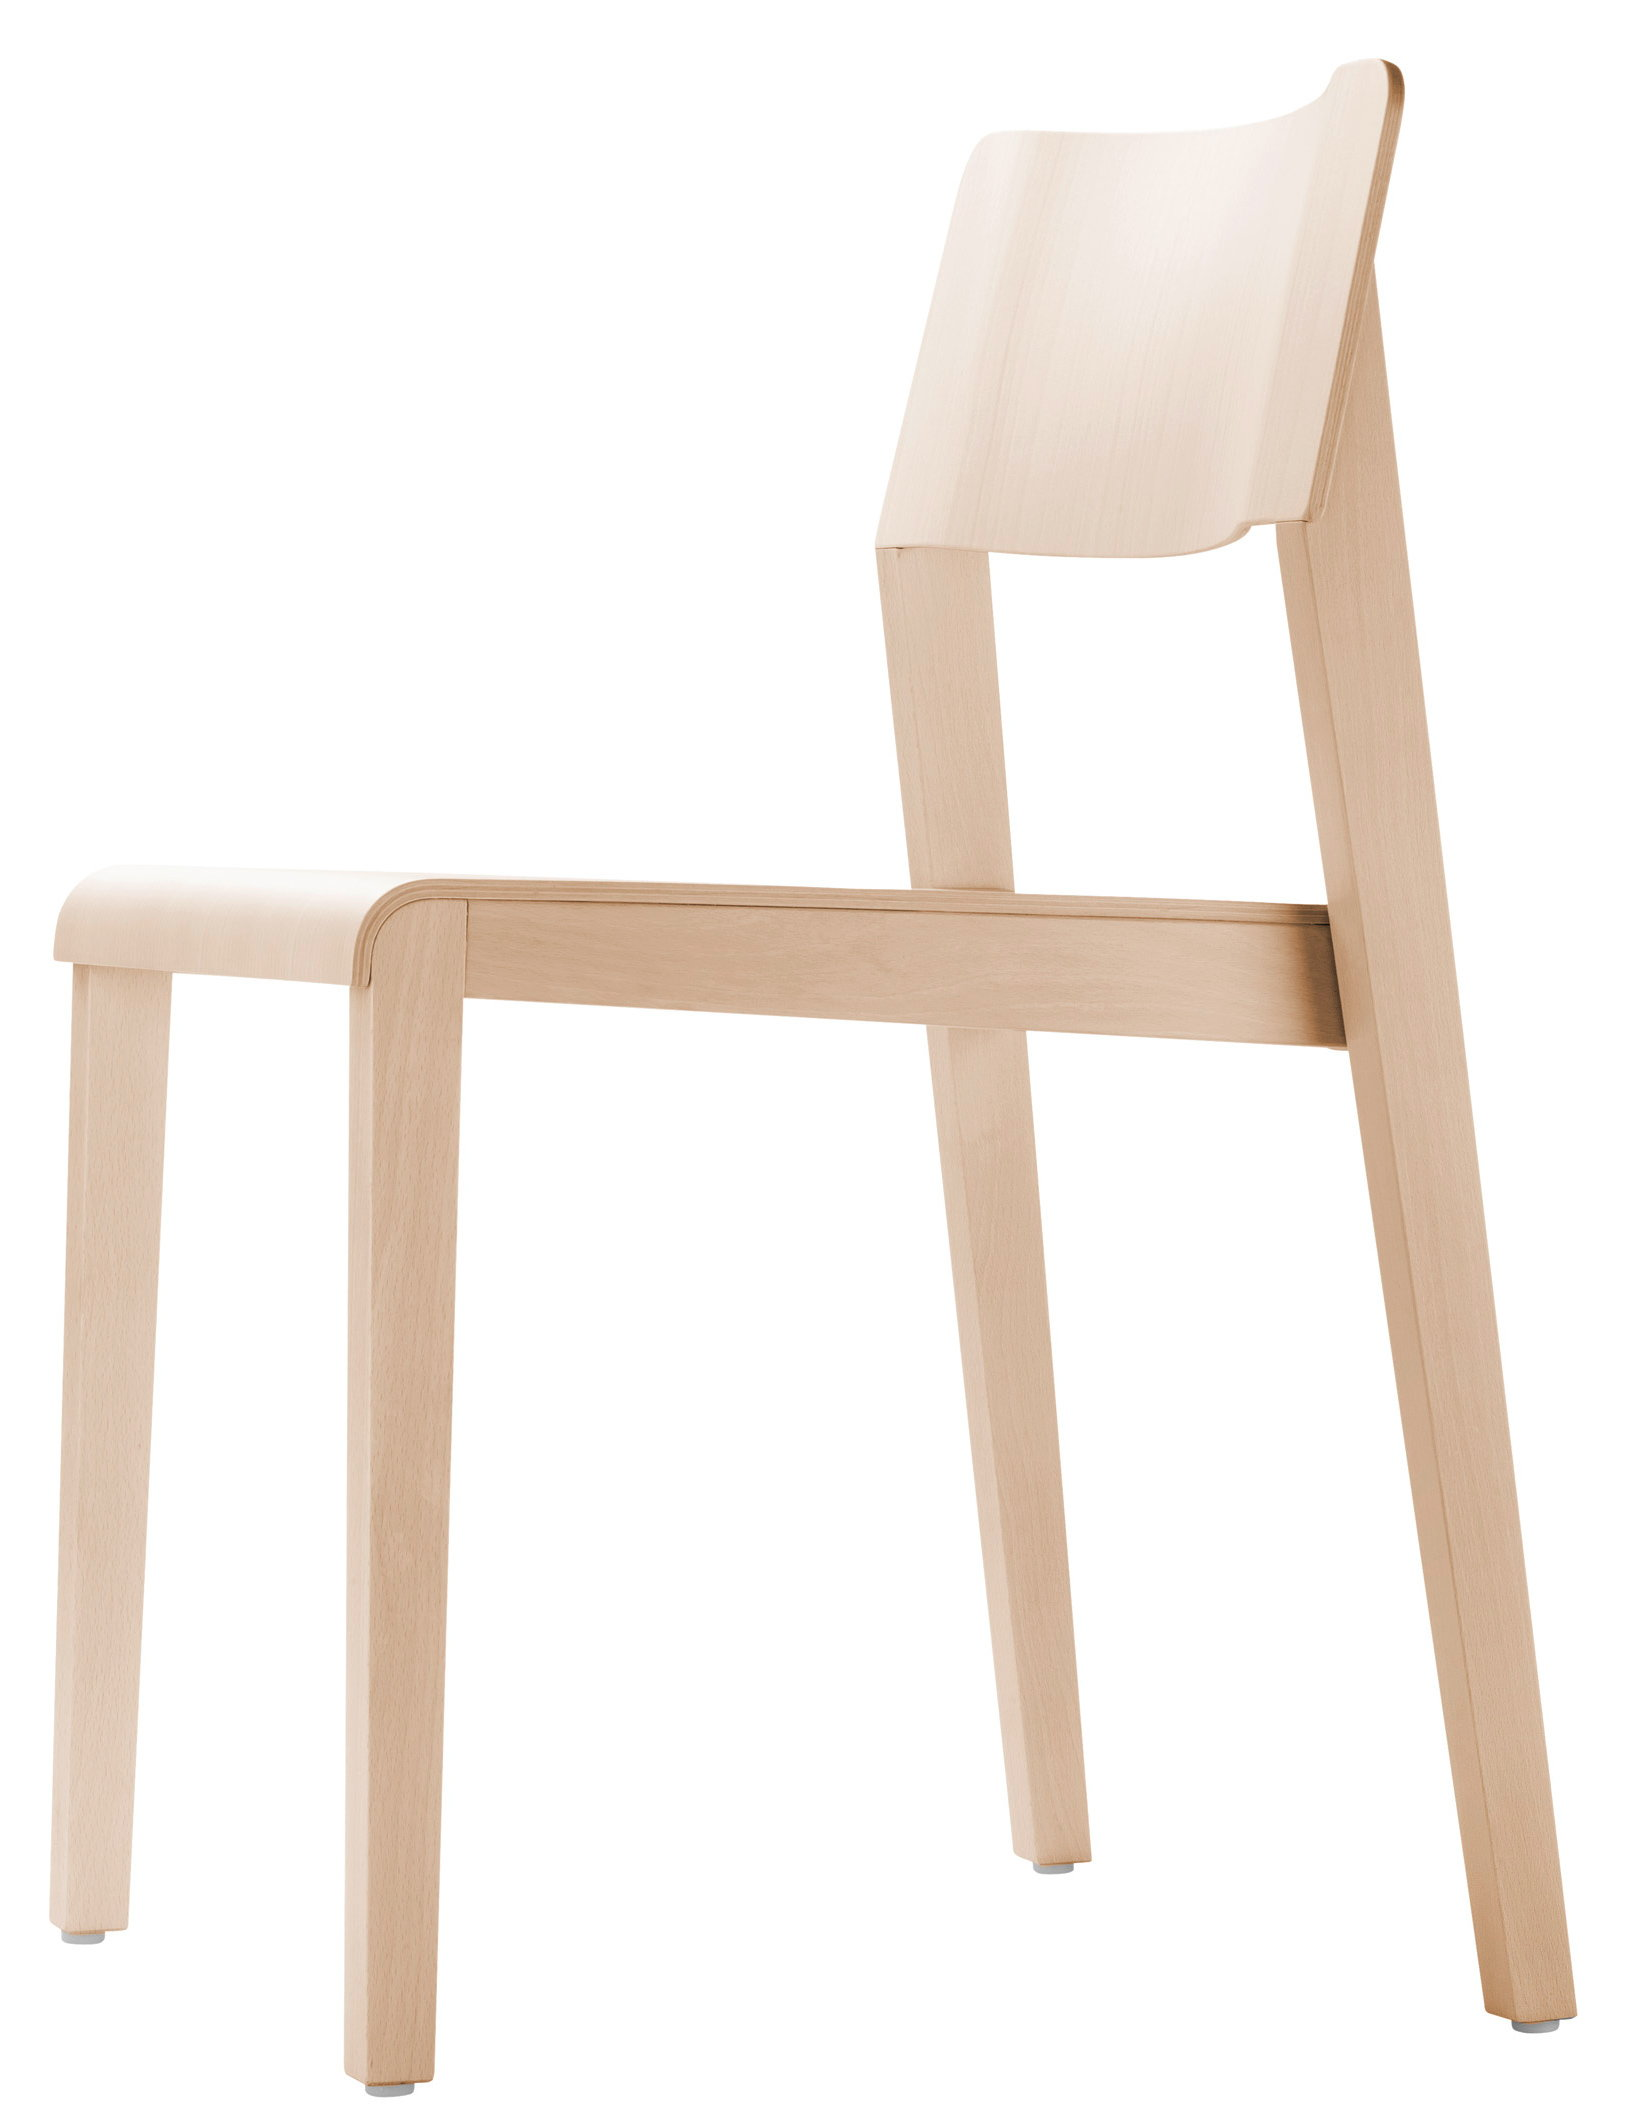 Thonet 330 Chair Series